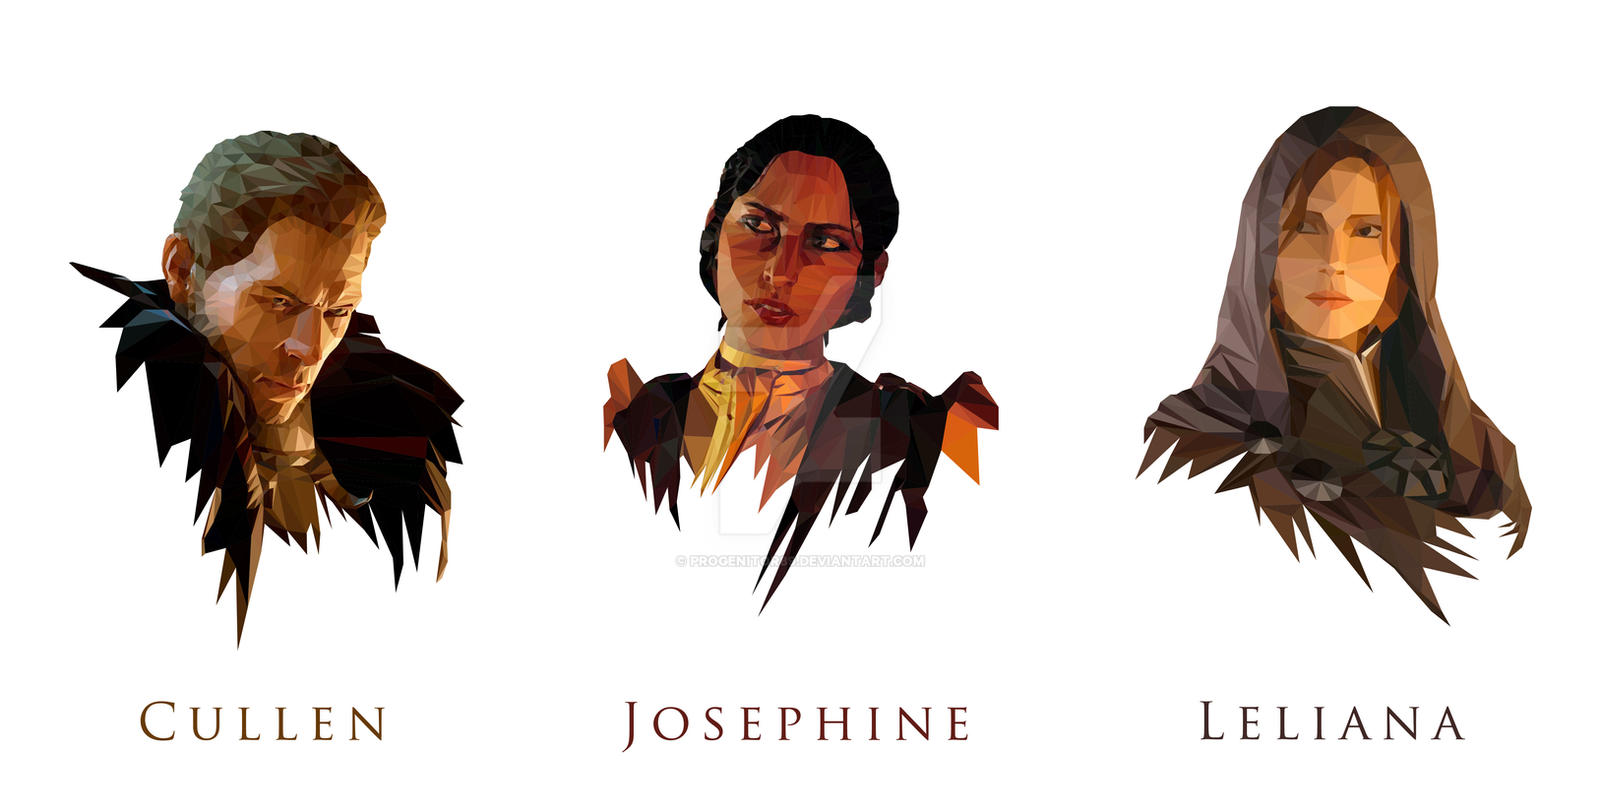 Dragon Age Inquisition Advisors By Progenitor89 On Deviantart